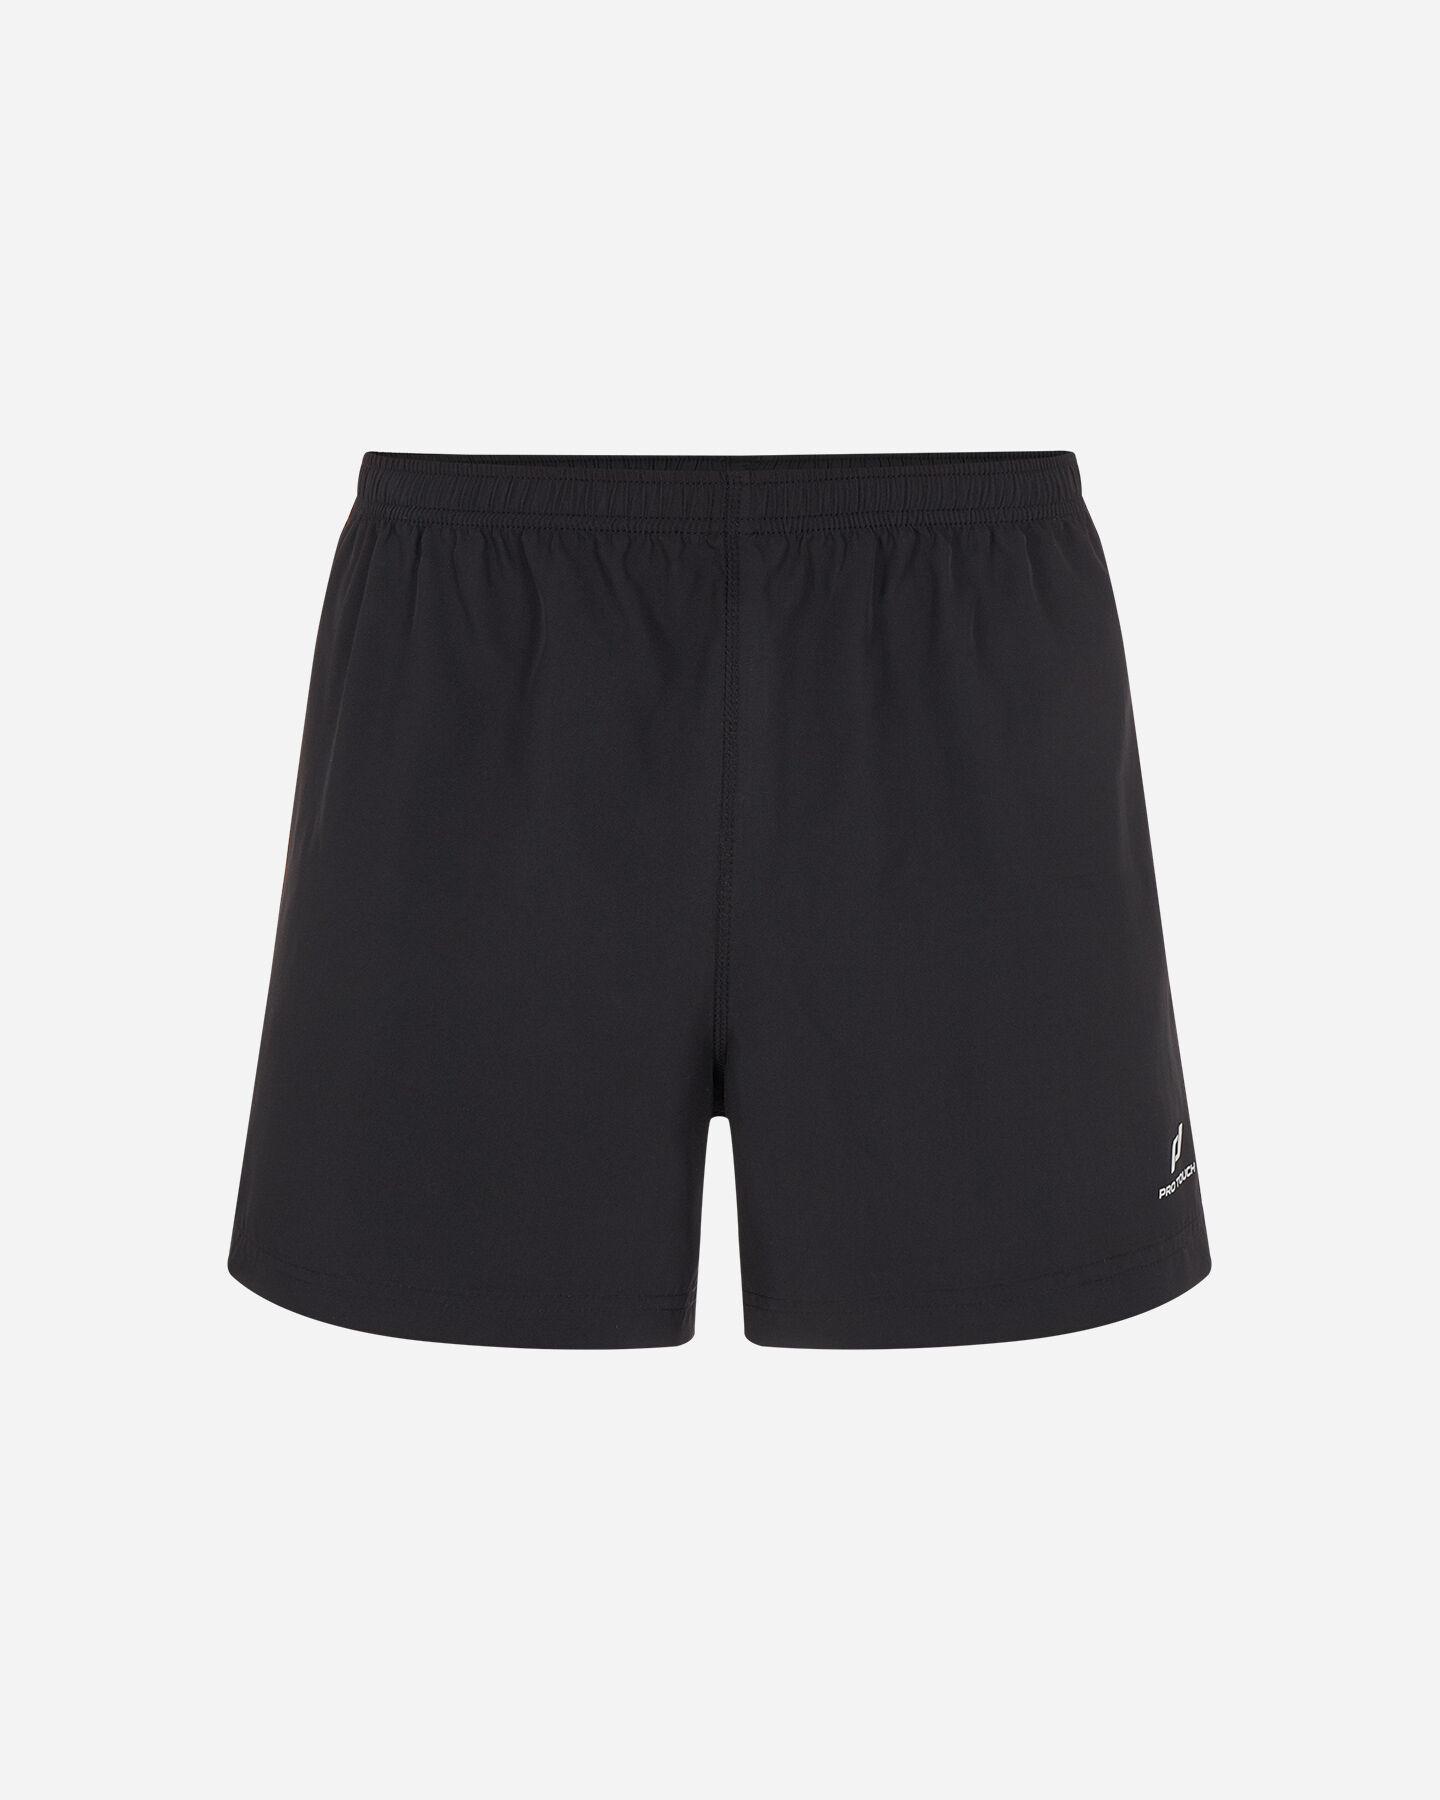 Short running PRO TOUCH MYCUS UX M S2001358 scatto 0